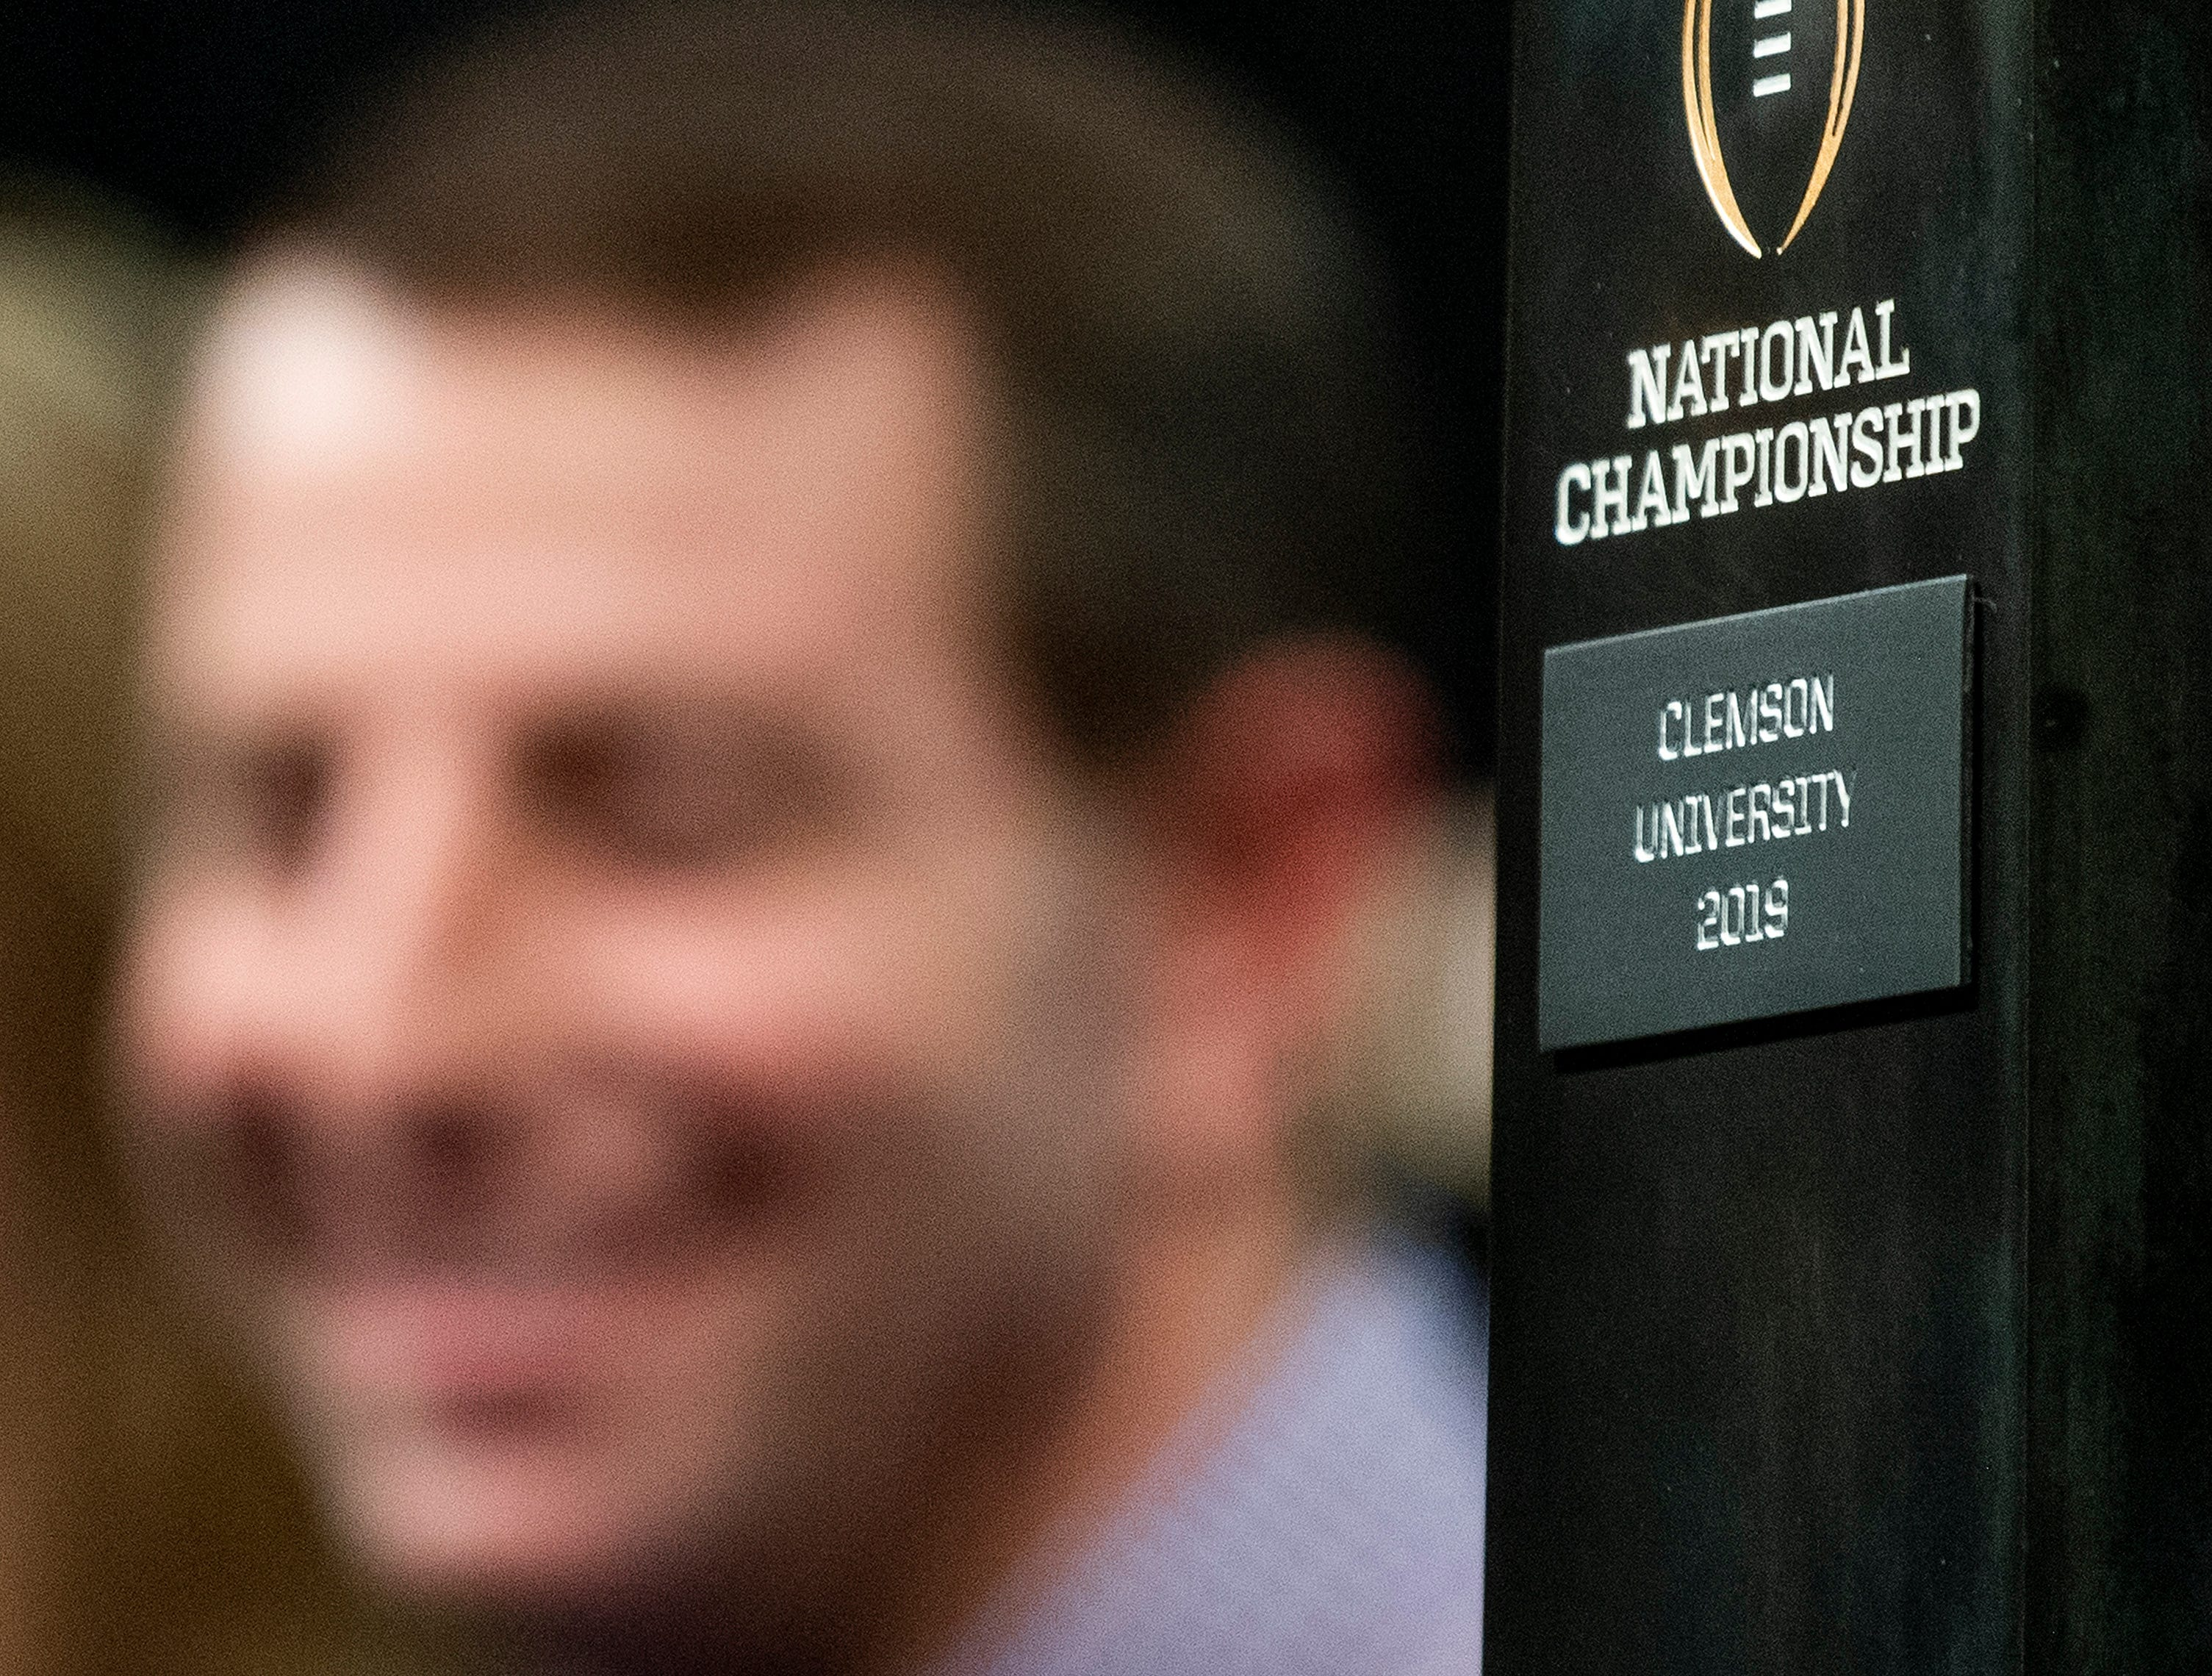 Clemson head coach Dabo Swinney is seen in The background during the College Football Playoff National Championship press conference in San Jose, Ca., on Tuesday January 8, 2019.